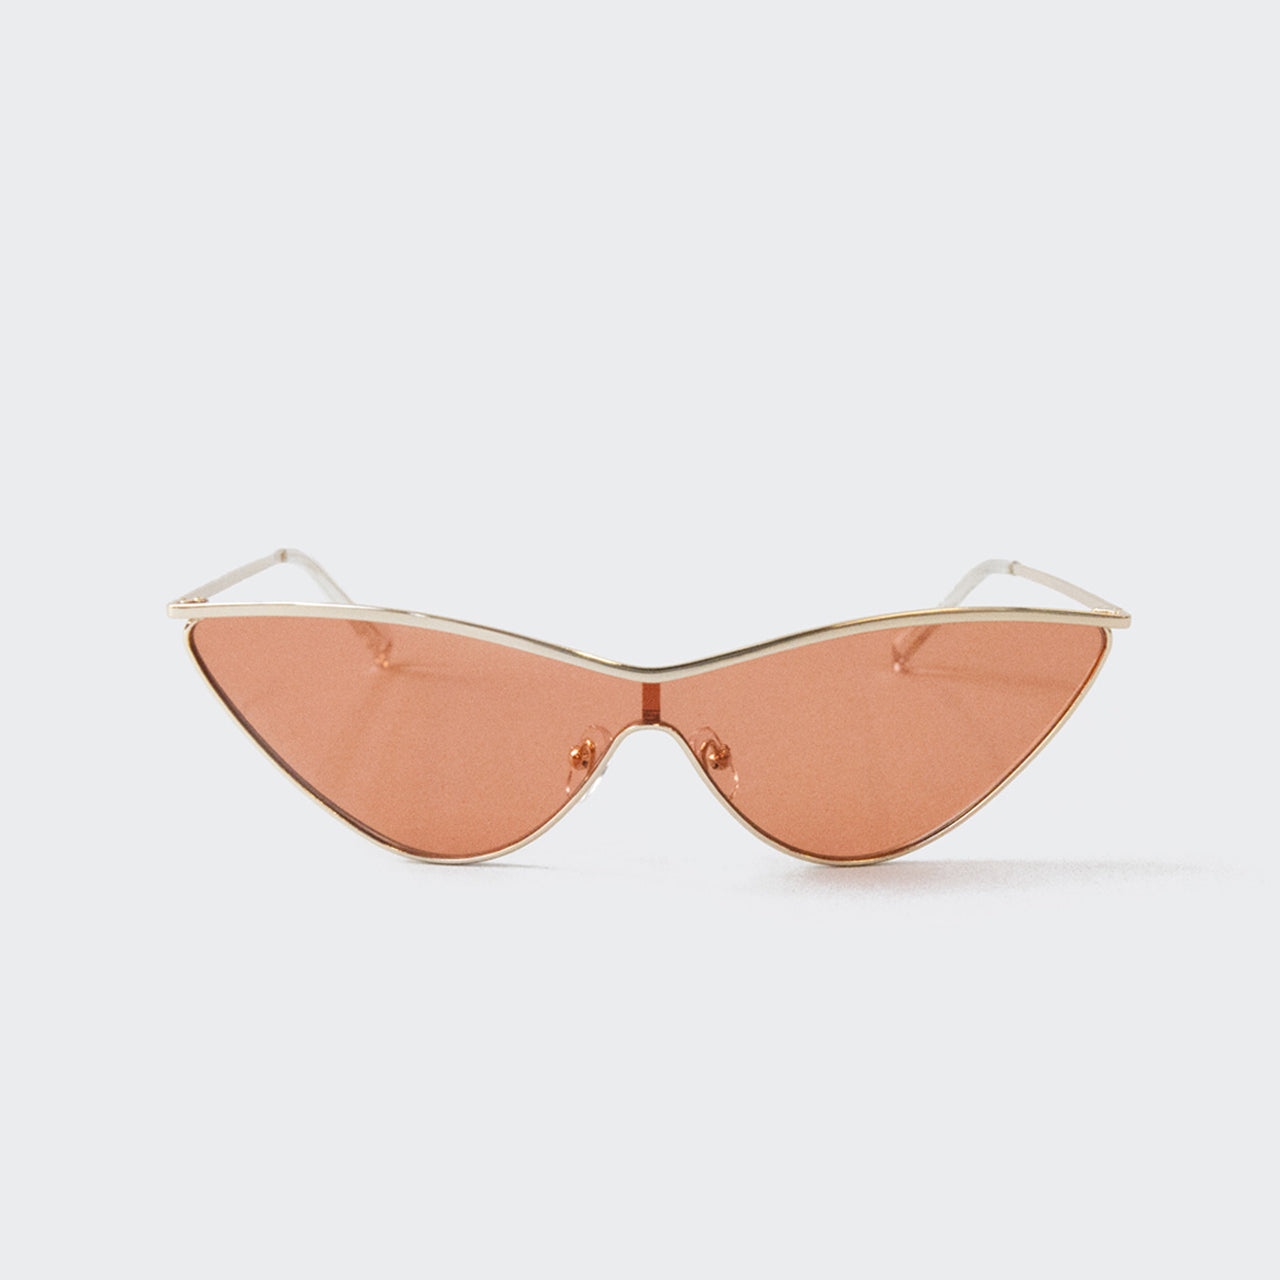 Adam Selman x Le Specs - The Fugitive Sunglasses - Gold, available at LCD